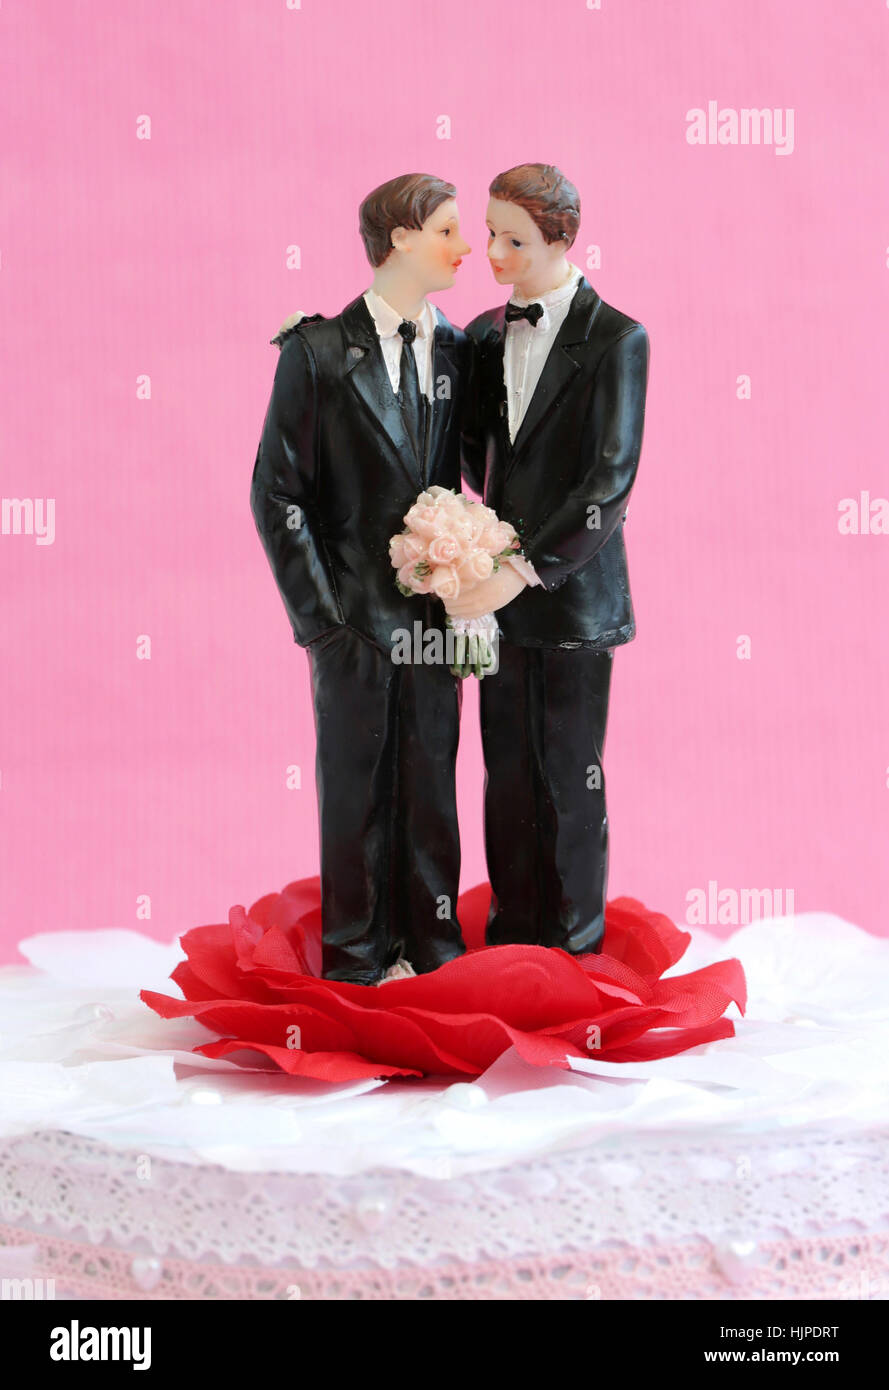 A homosexual couple against a pink background - Stock Image